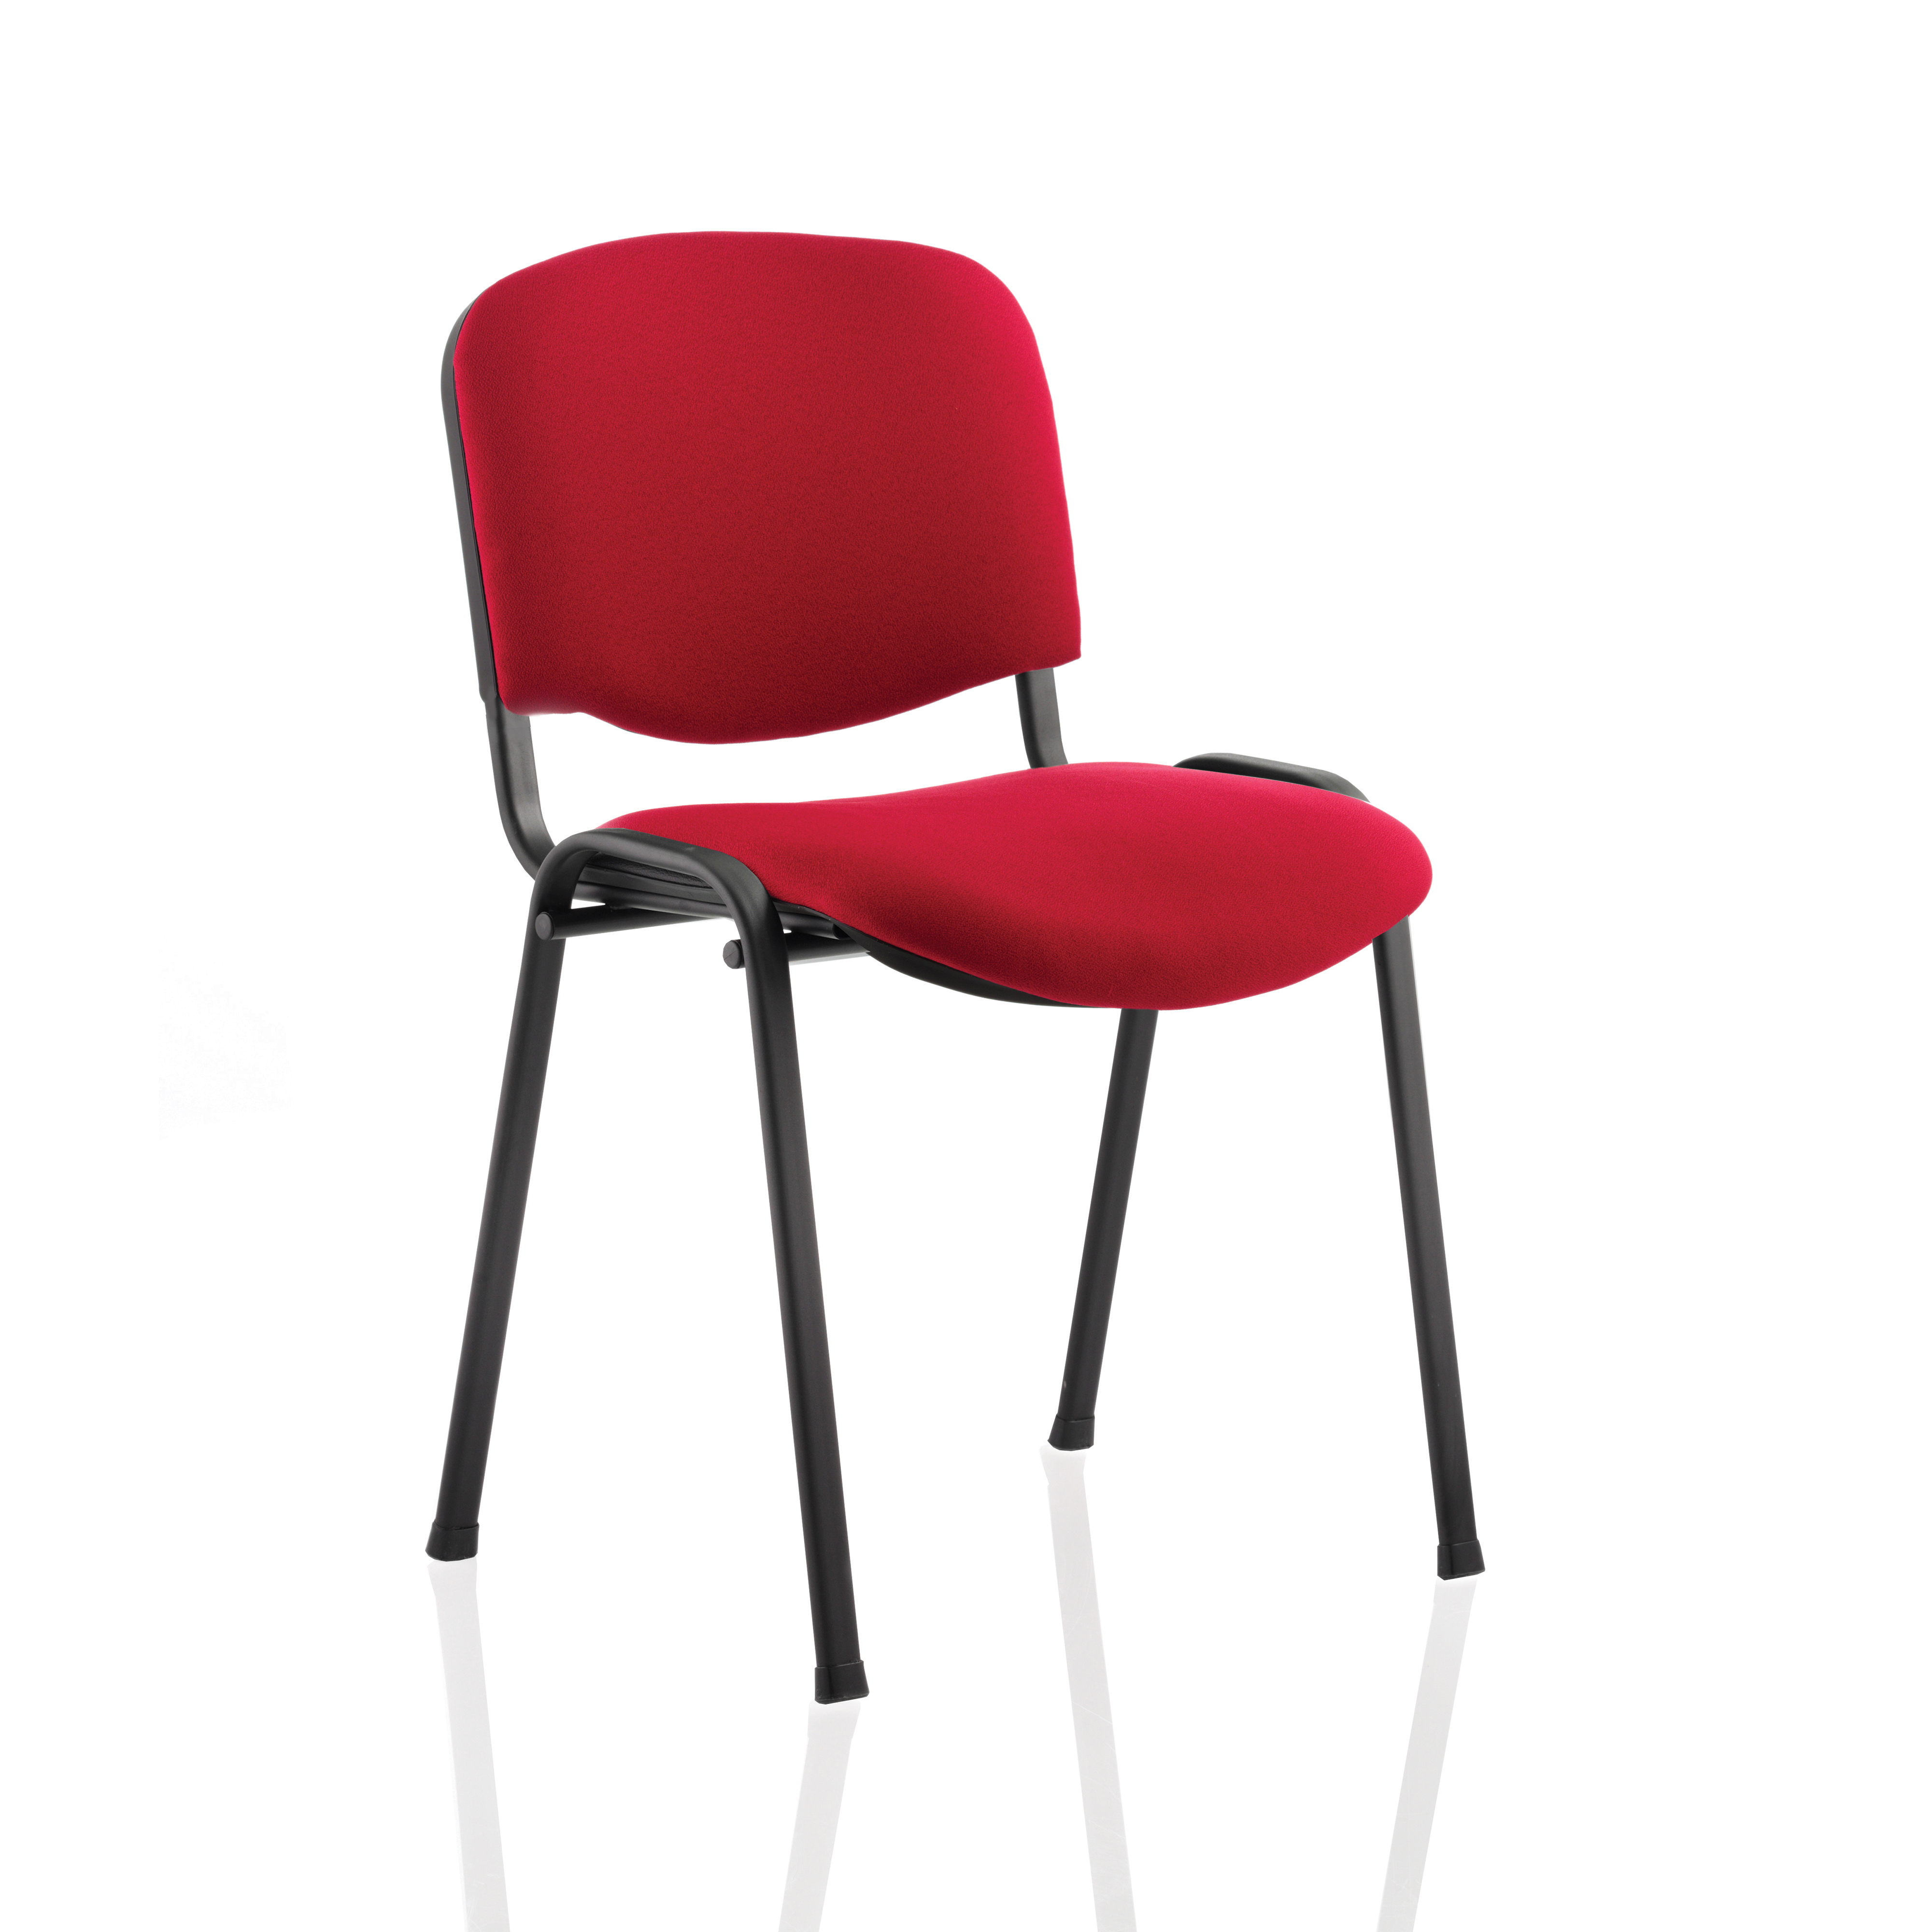 Trexus Stacking Chair Black Frame Red 480x420x500mm Ref T0477A008